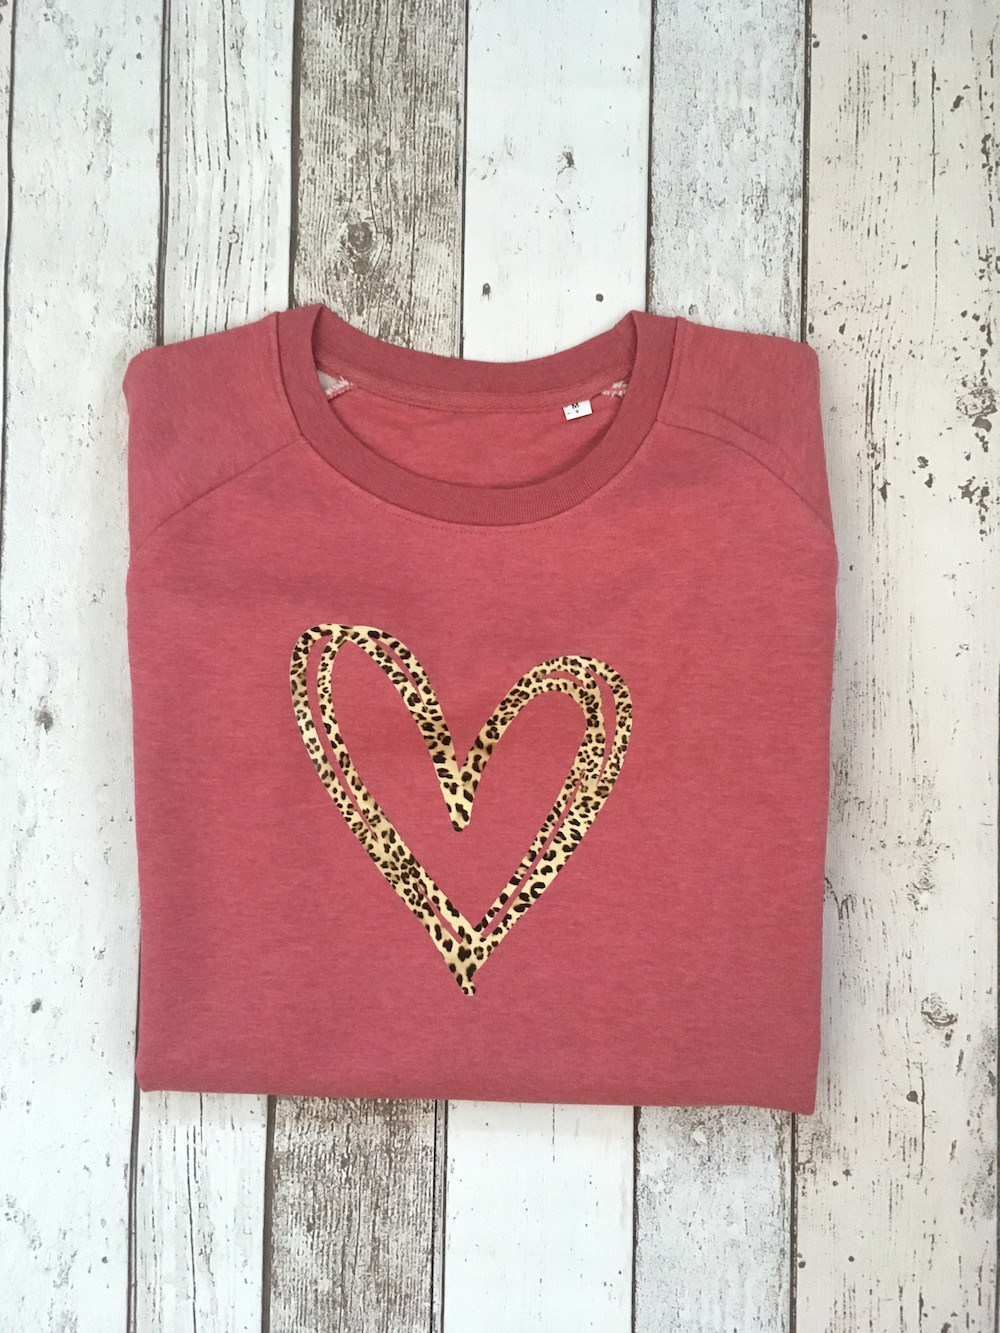 Scribble Heart Super Soft Sweatshirt – Cranberry Leopard Print